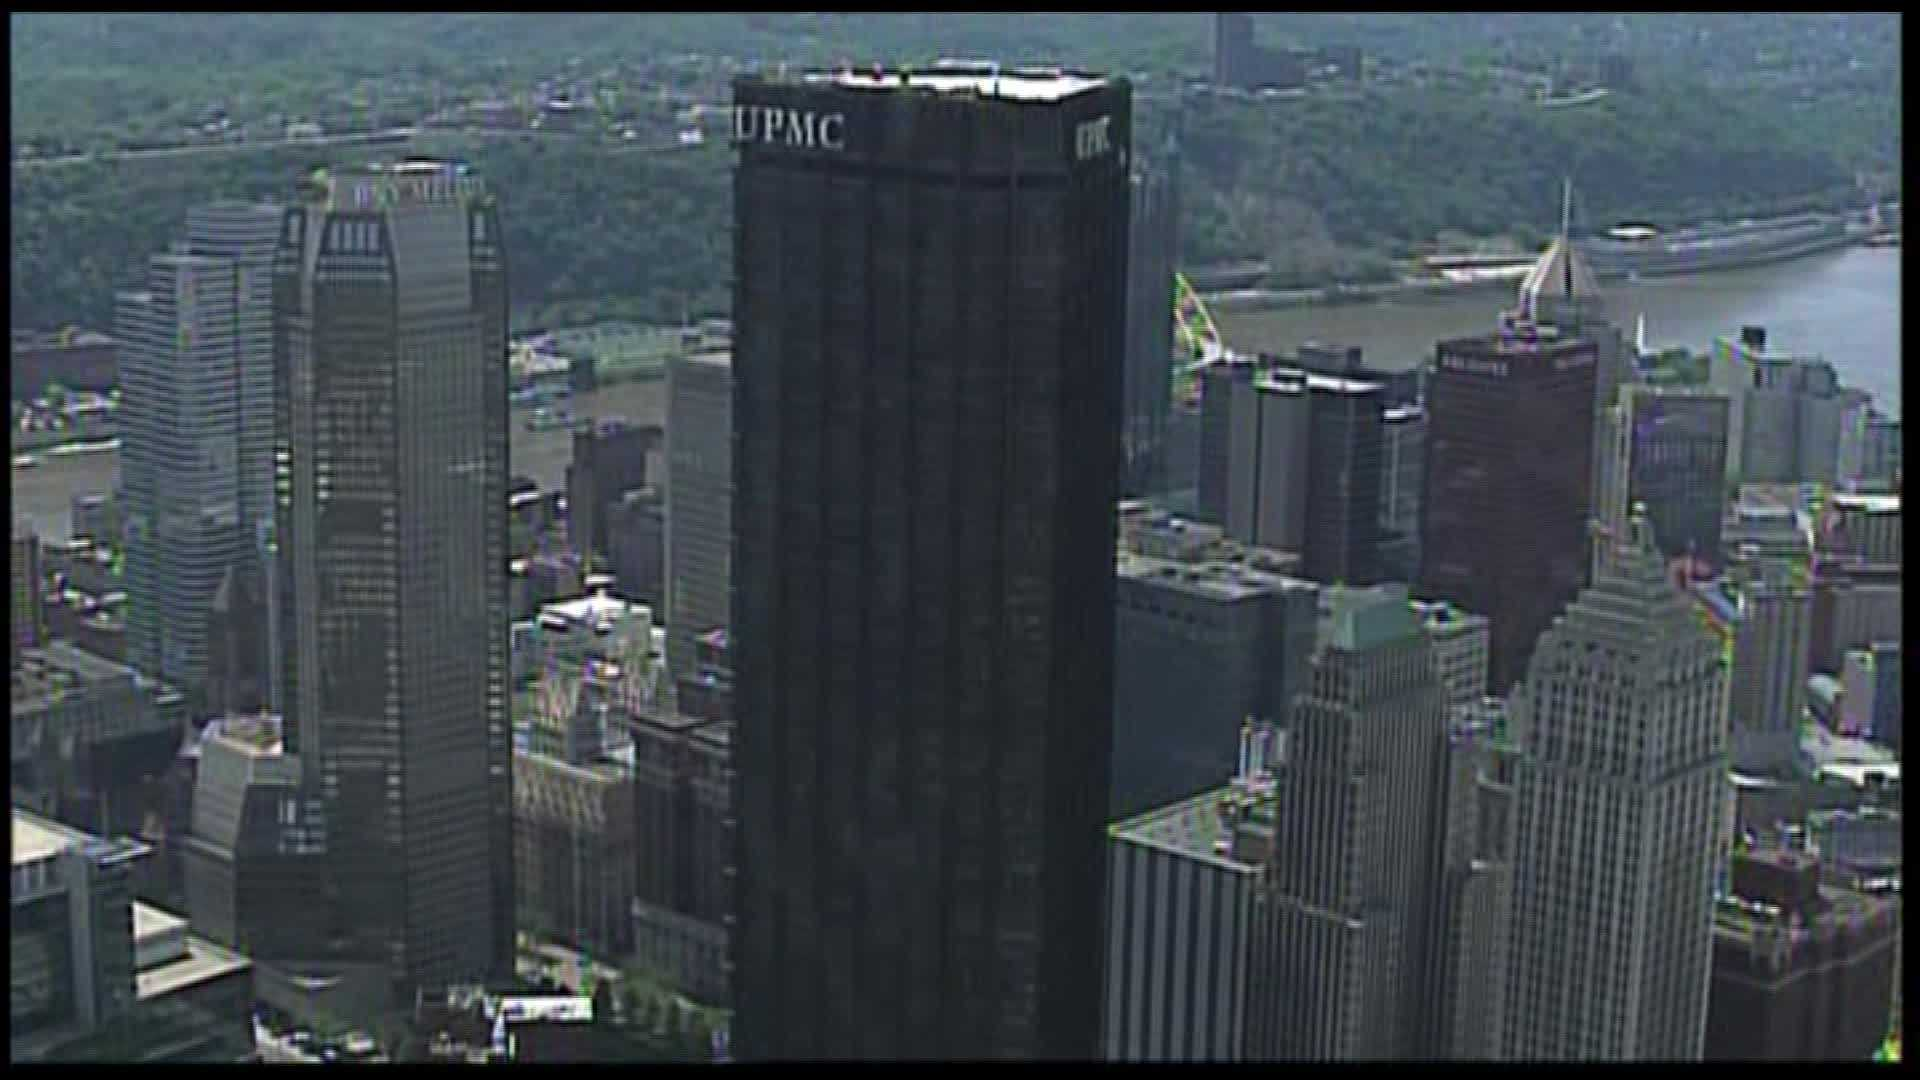 The U.S. Steel Tower is Pittsburgh's tallest skyscraper.